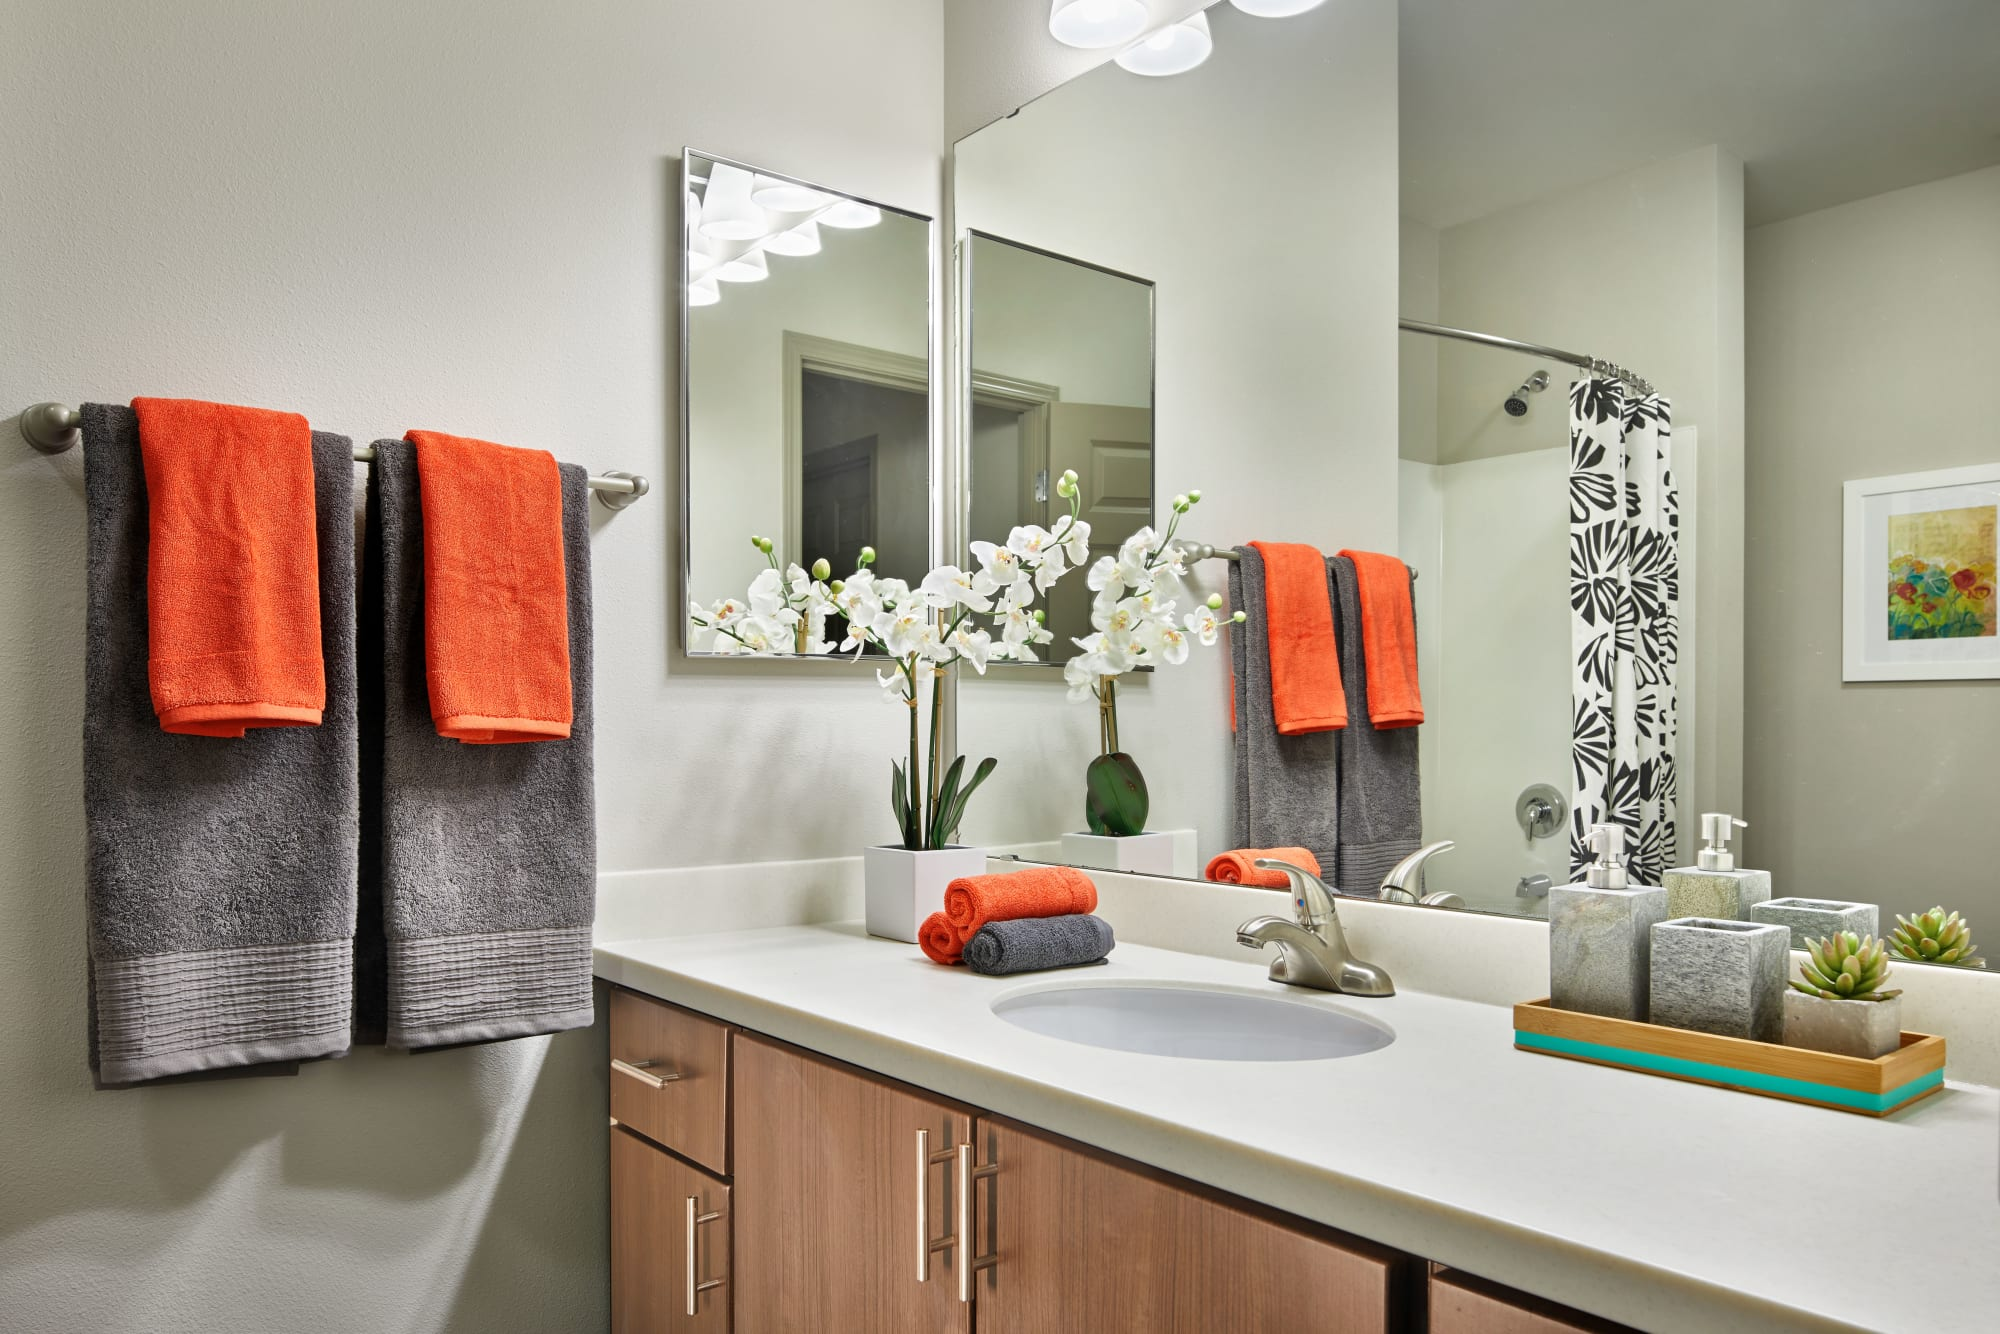 A bathroom with lots of counter space at Brookside Village in Auburn, Washington